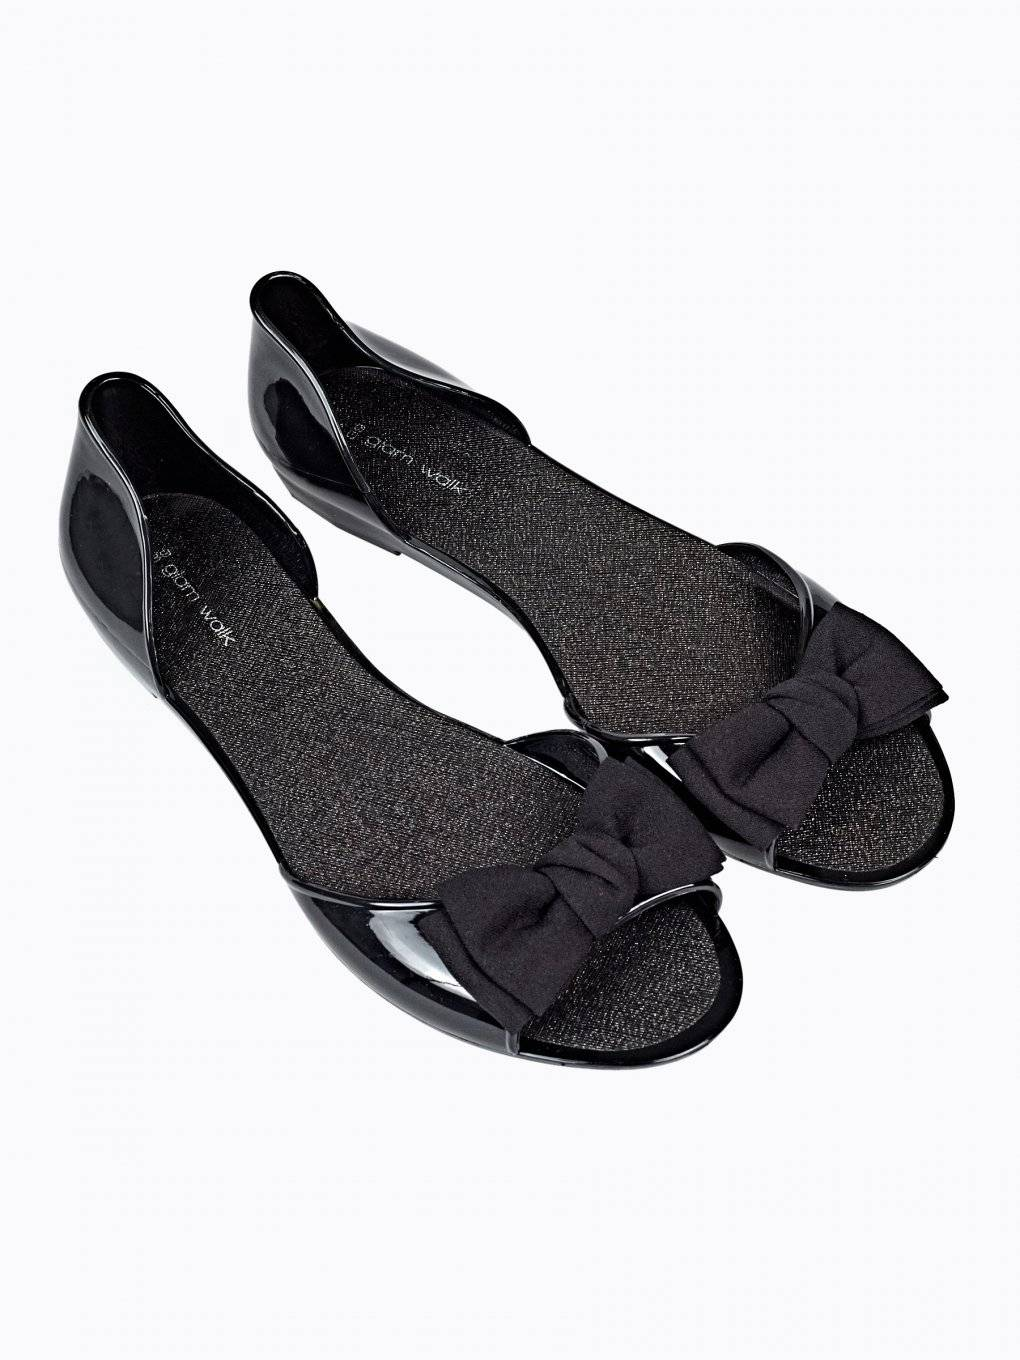 JELLY FLAT SANDALS WITH BOW